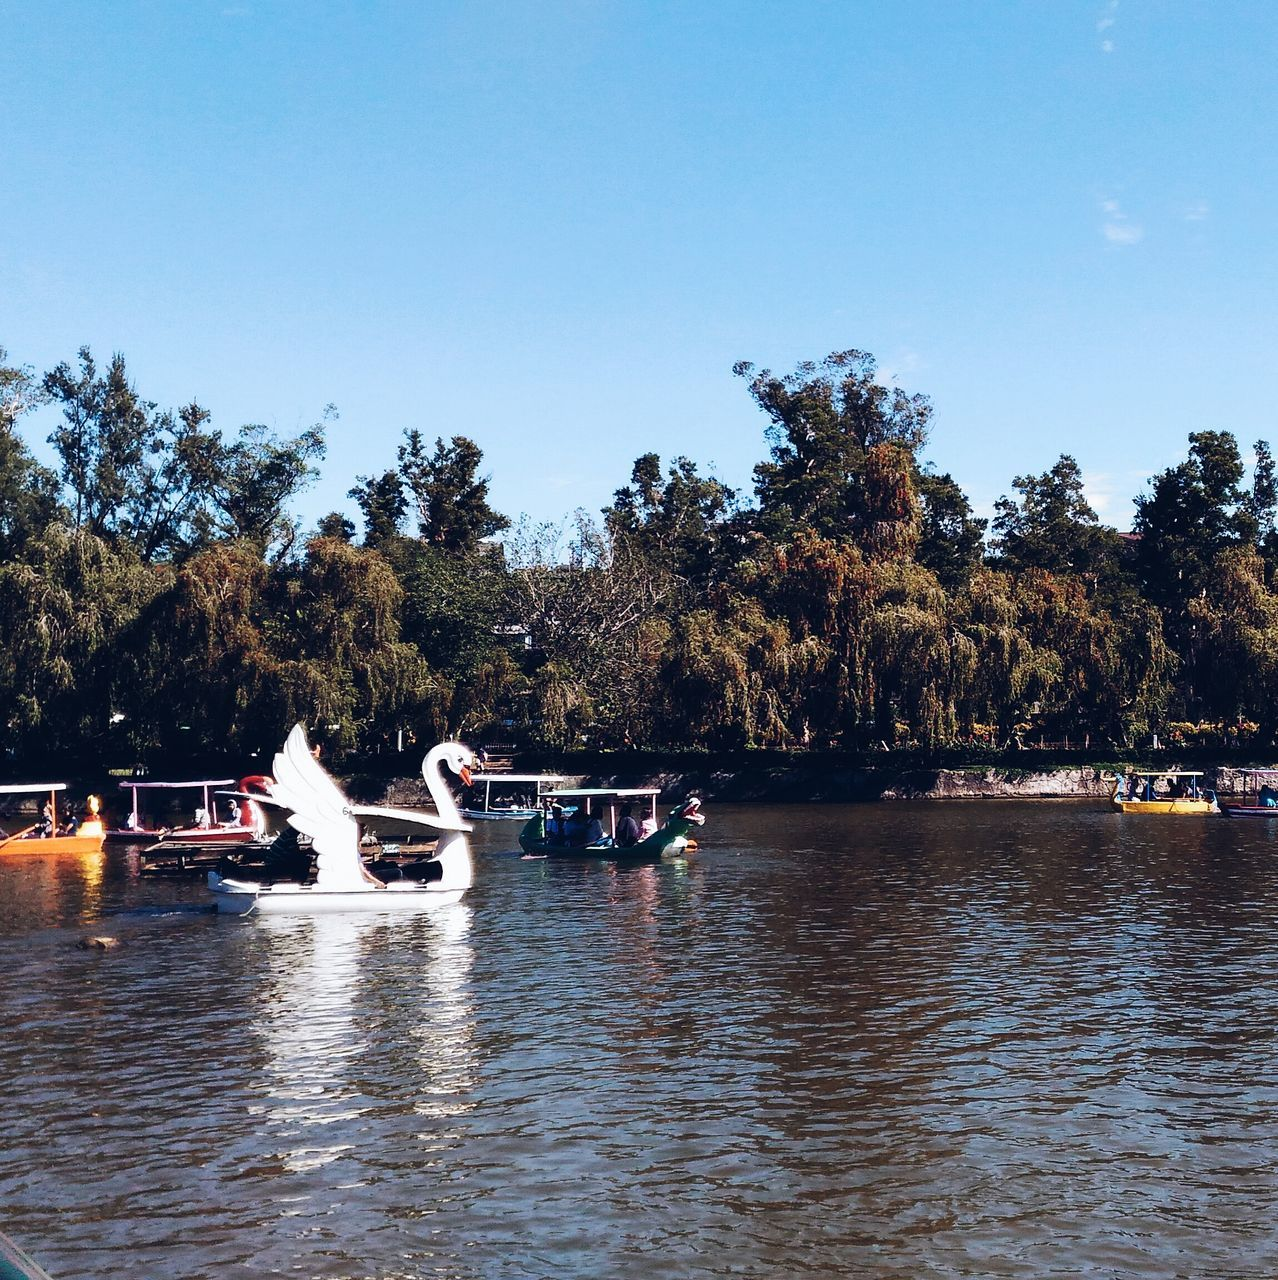 tree, nautical vessel, water, river, transportation, waterfront, mode of transport, outdoors, large group of people, clear sky, day, pedal boat, moored, tranquility, vacations, nature, sky, real people, scenics, sailing, beauty in nature, people